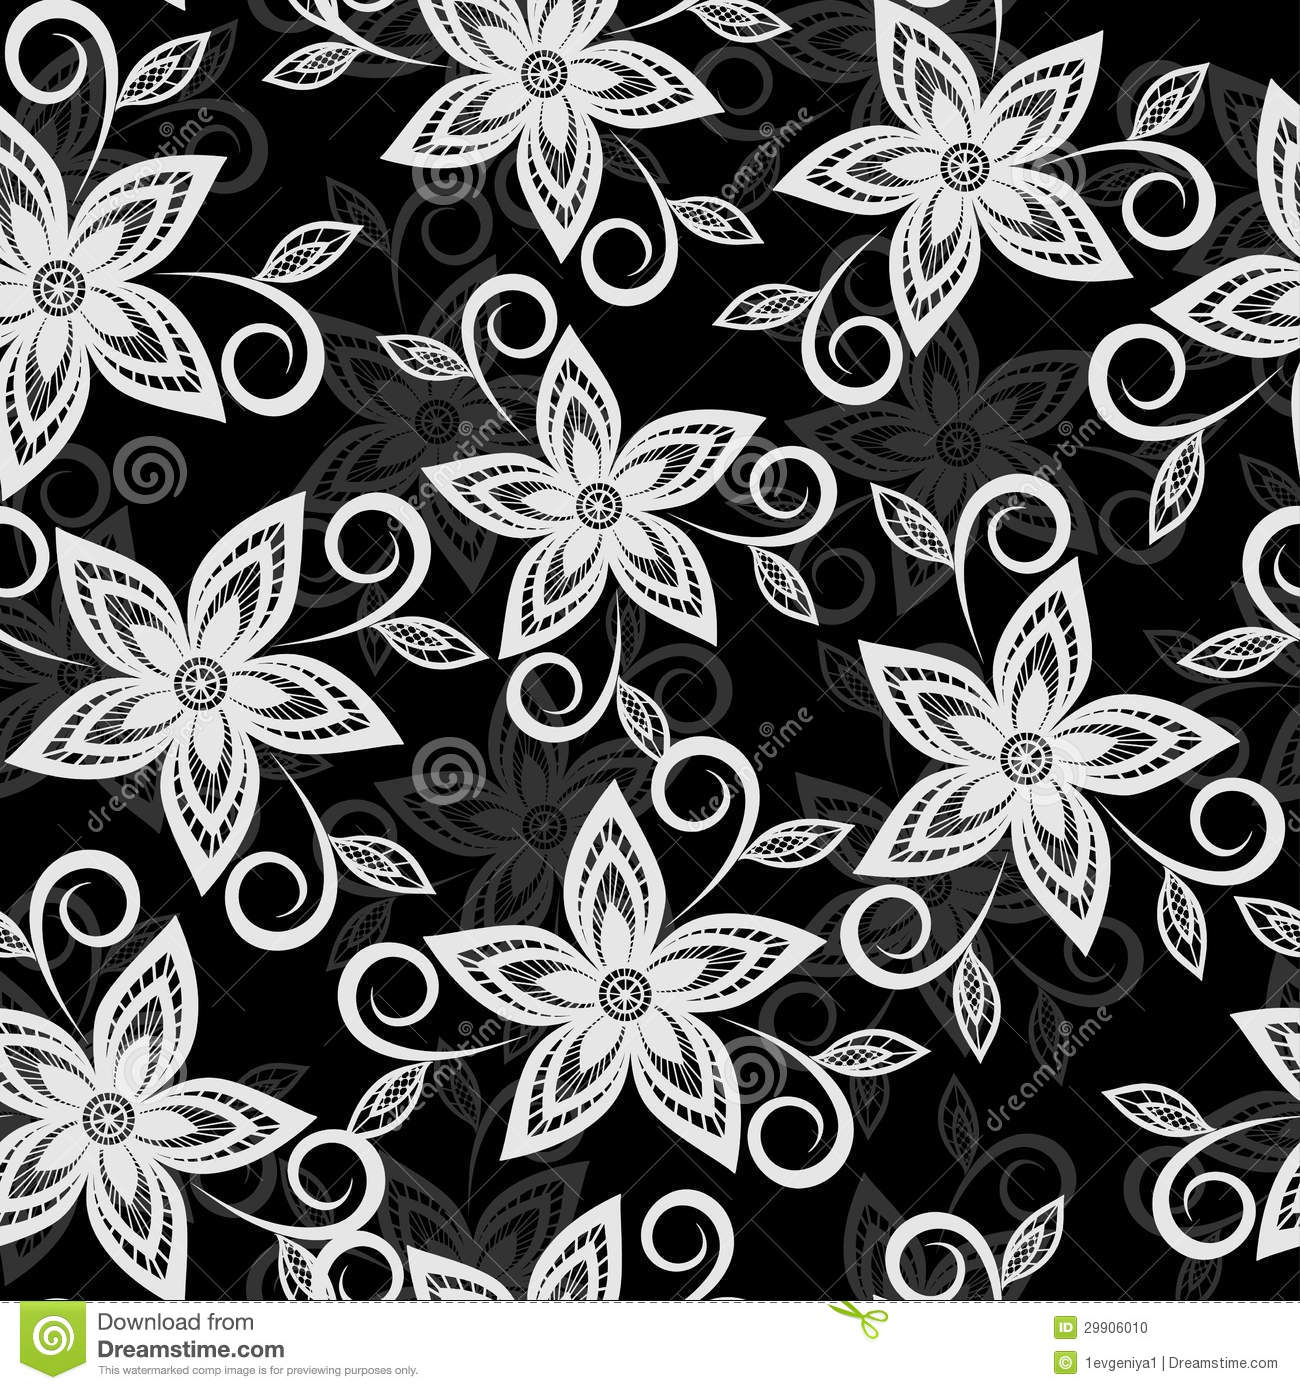 48 Black And White Floral Wallpaper On Wallpapersafari